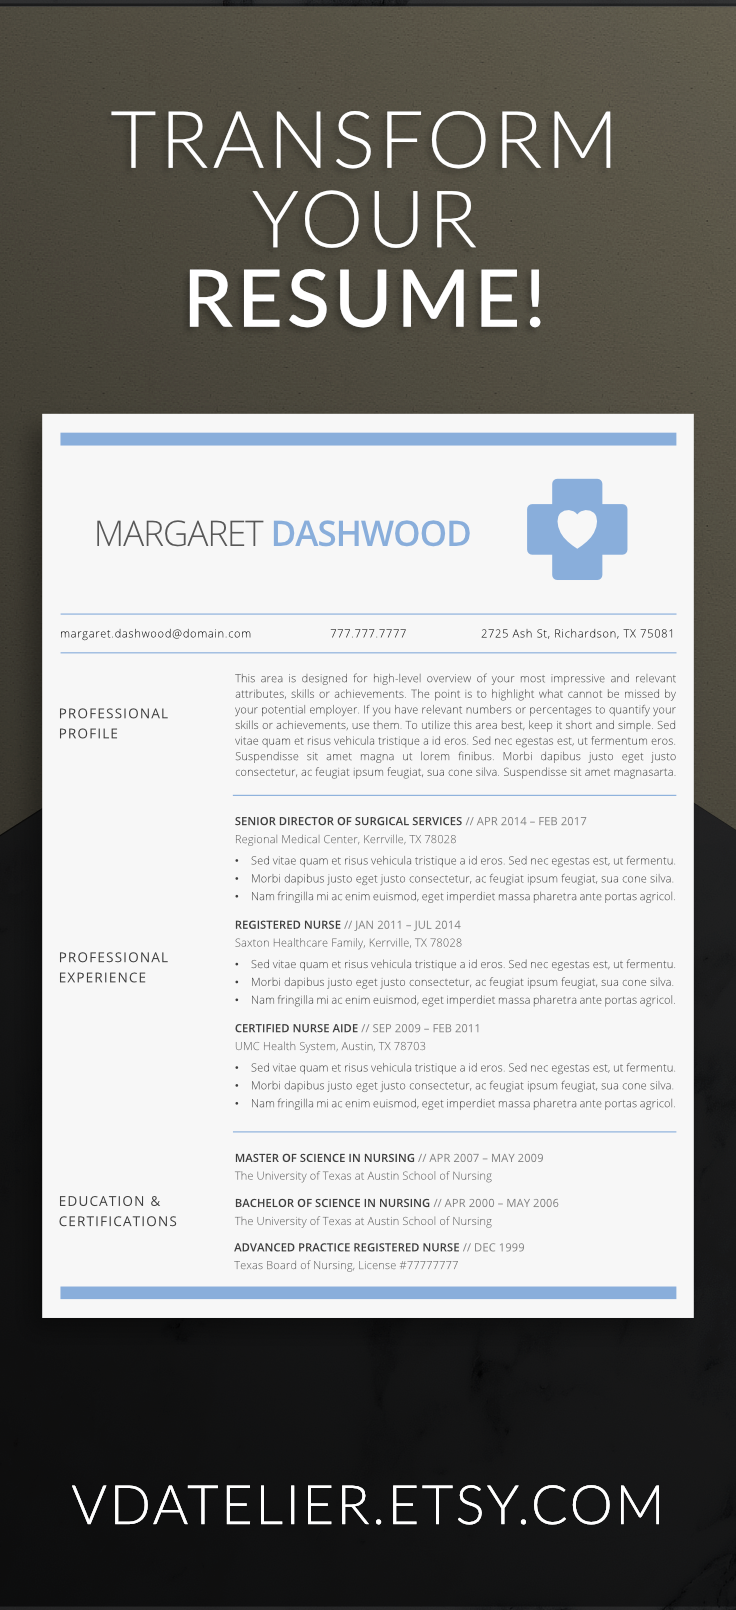 Nurse Resume Template 5 Pages   Nursing Resume Template   Registered     Nurse resume template for modern professionals  Suitable as medical resume  for nurses  CNA  EMS or doctors   resume  resumetemplate  nurse  cna   rnresume